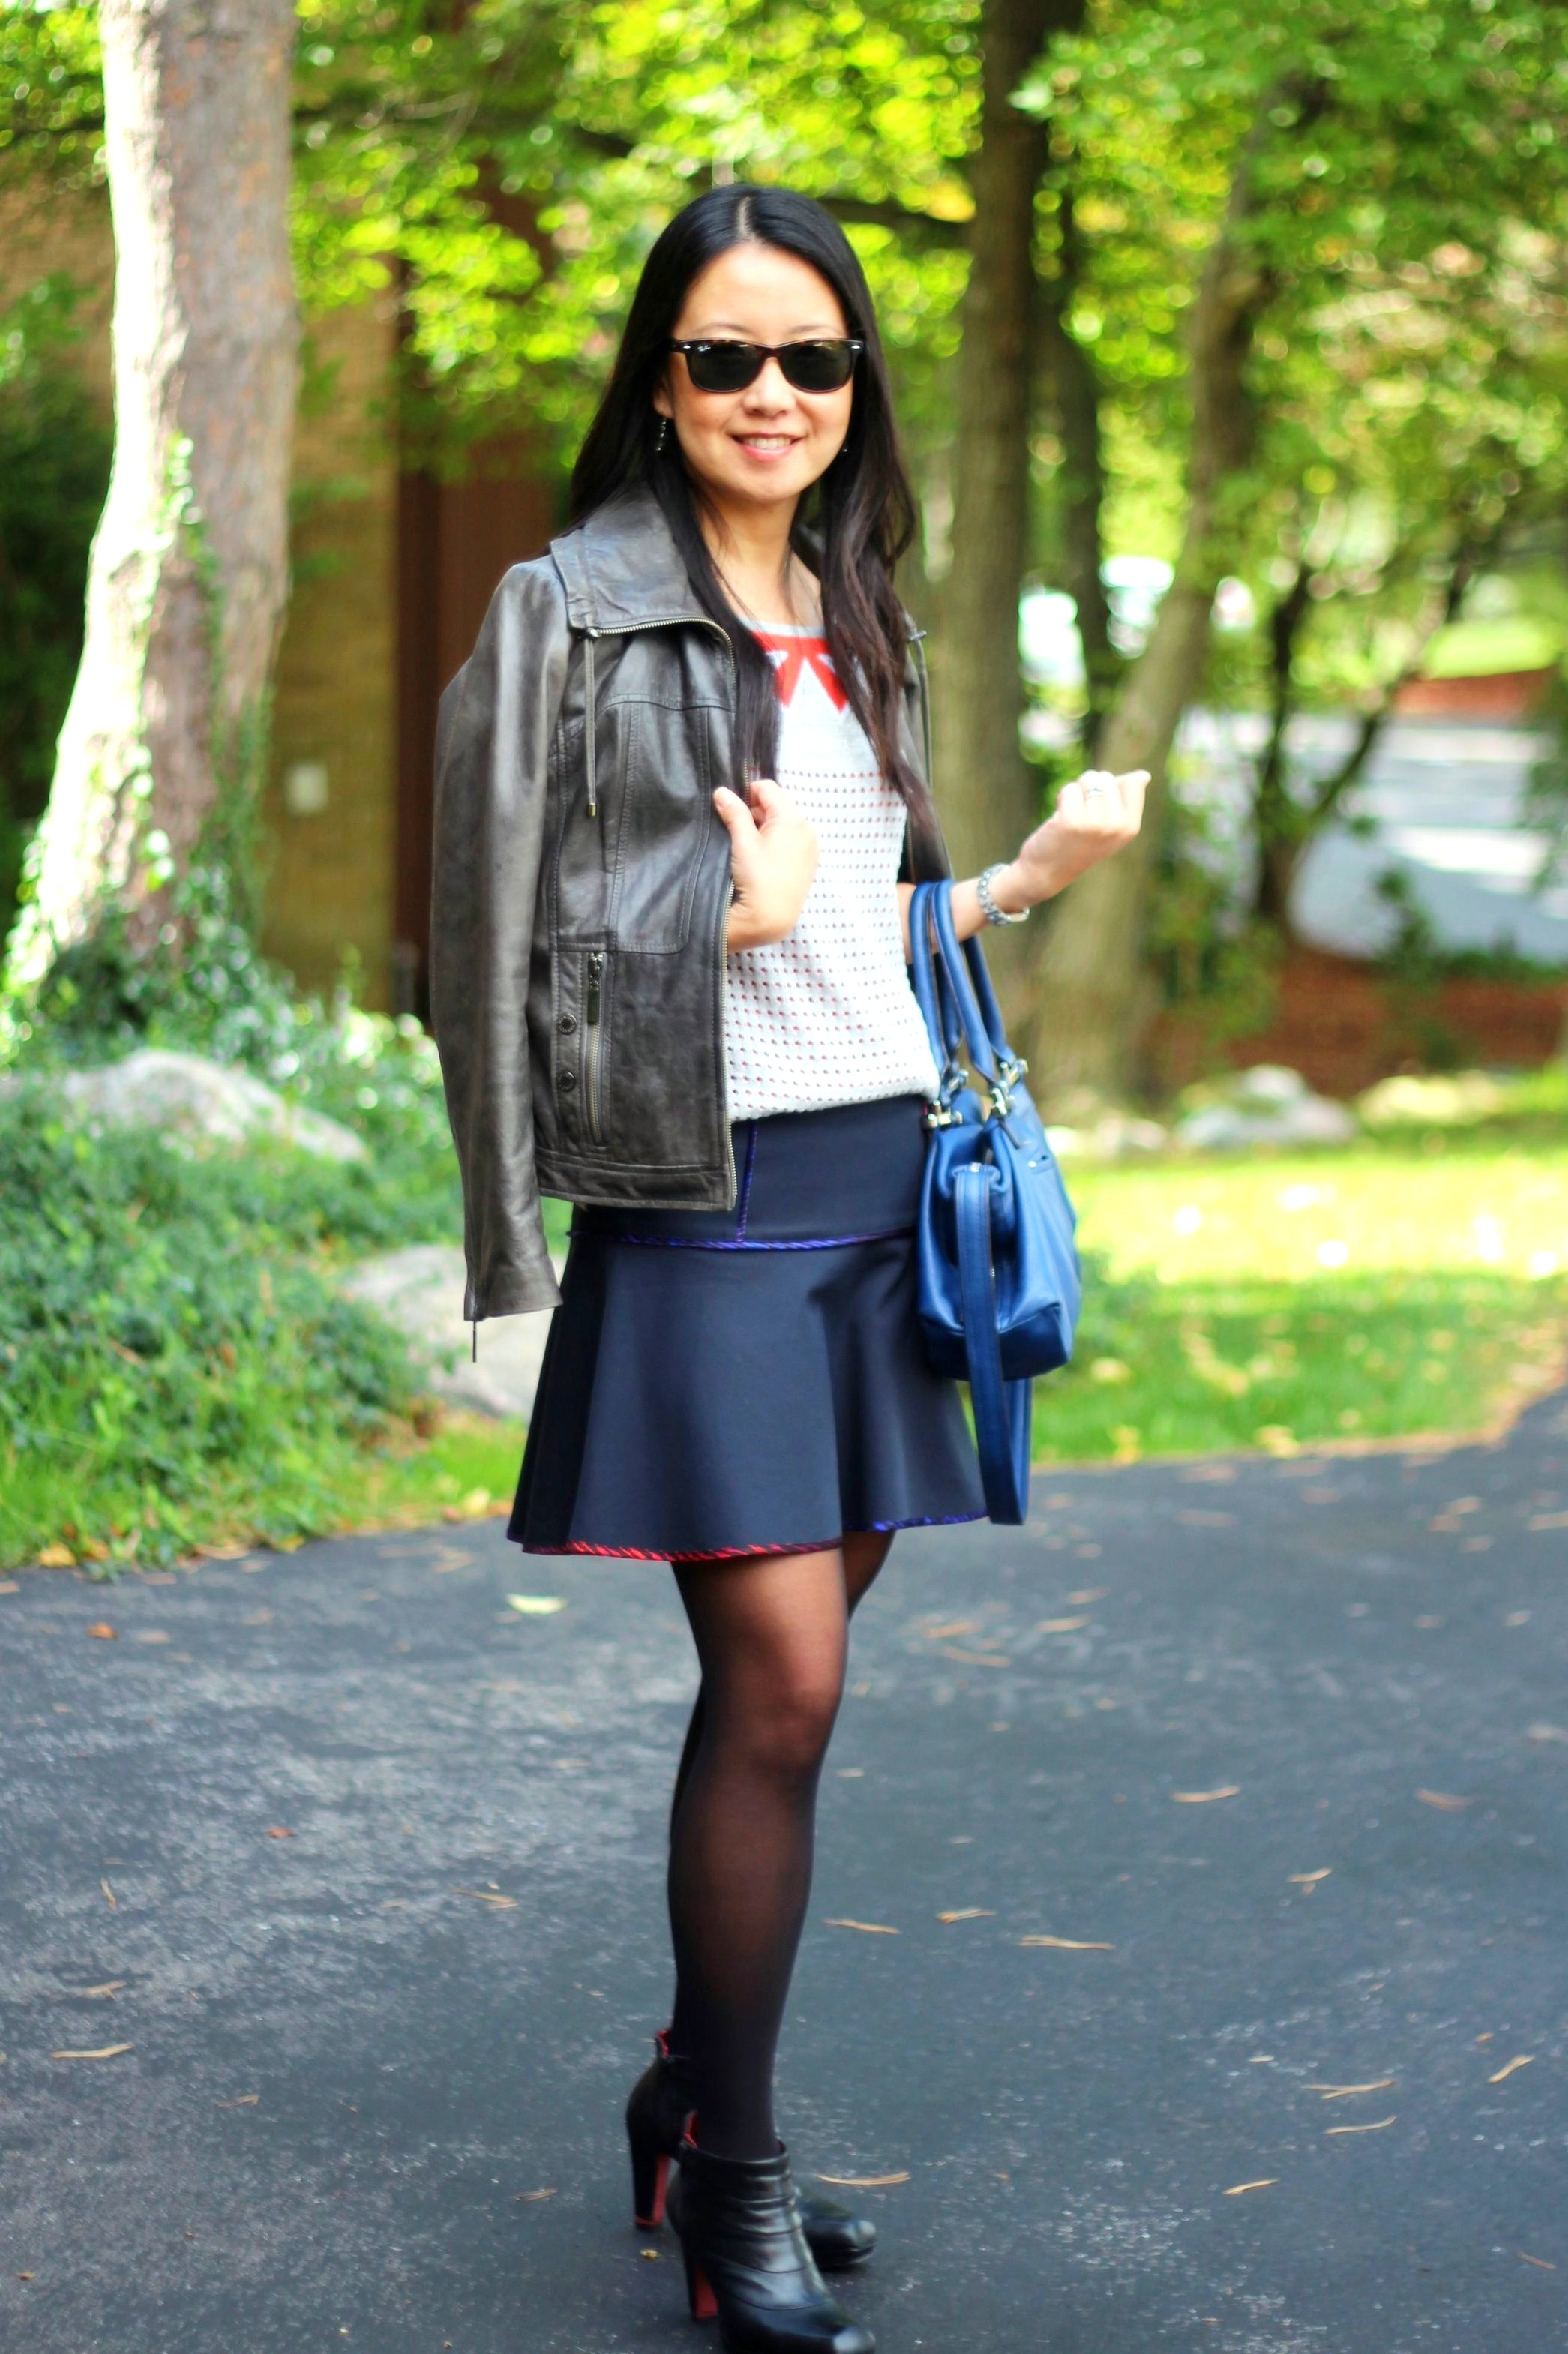 Outfit Highlight The 40-Year-Old School Girl? - My Rose Colored Shades